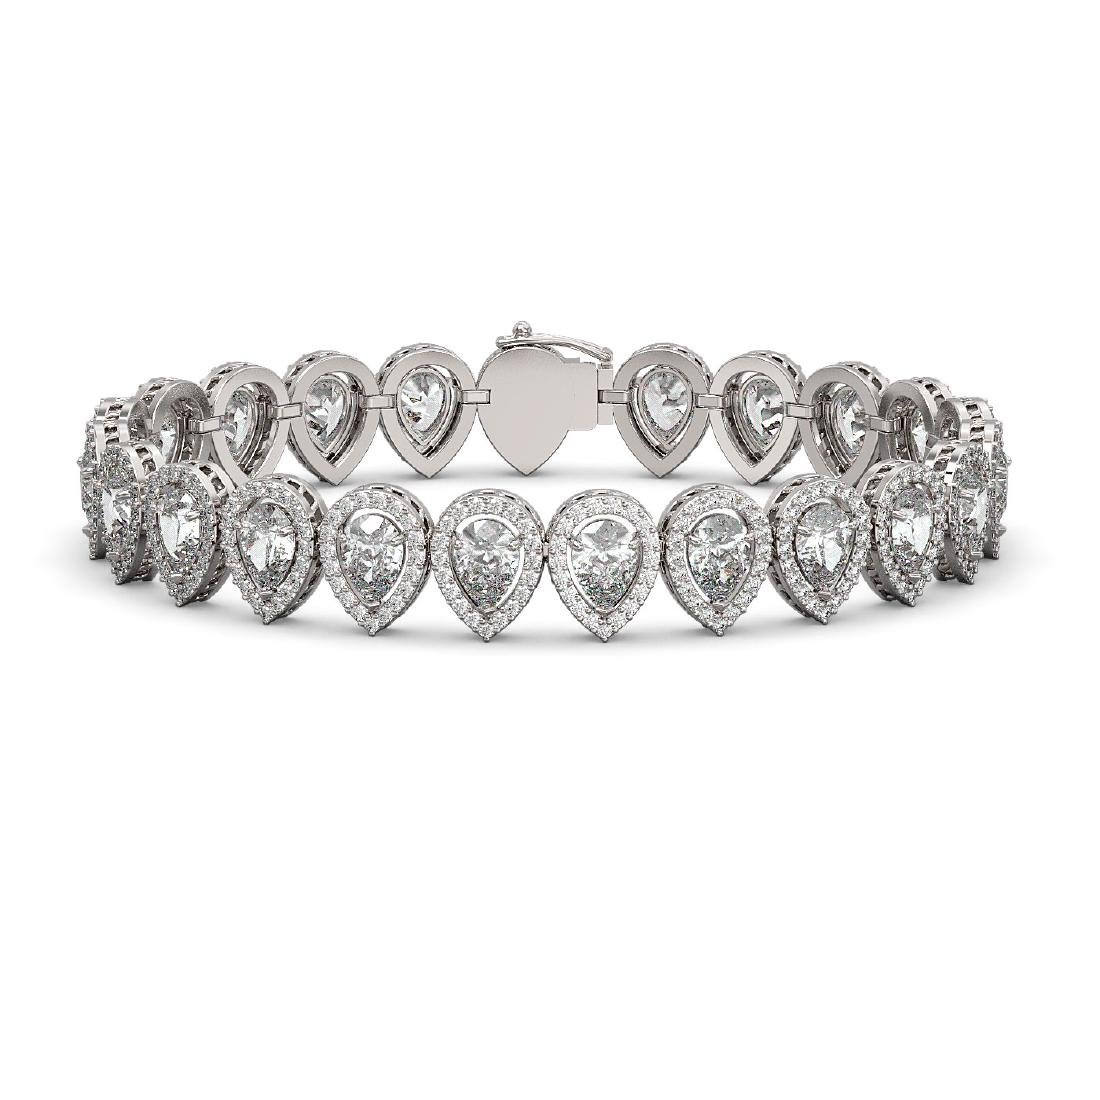 15.85 CTW Pear Diamond Designer Bracelet 18K White Gold